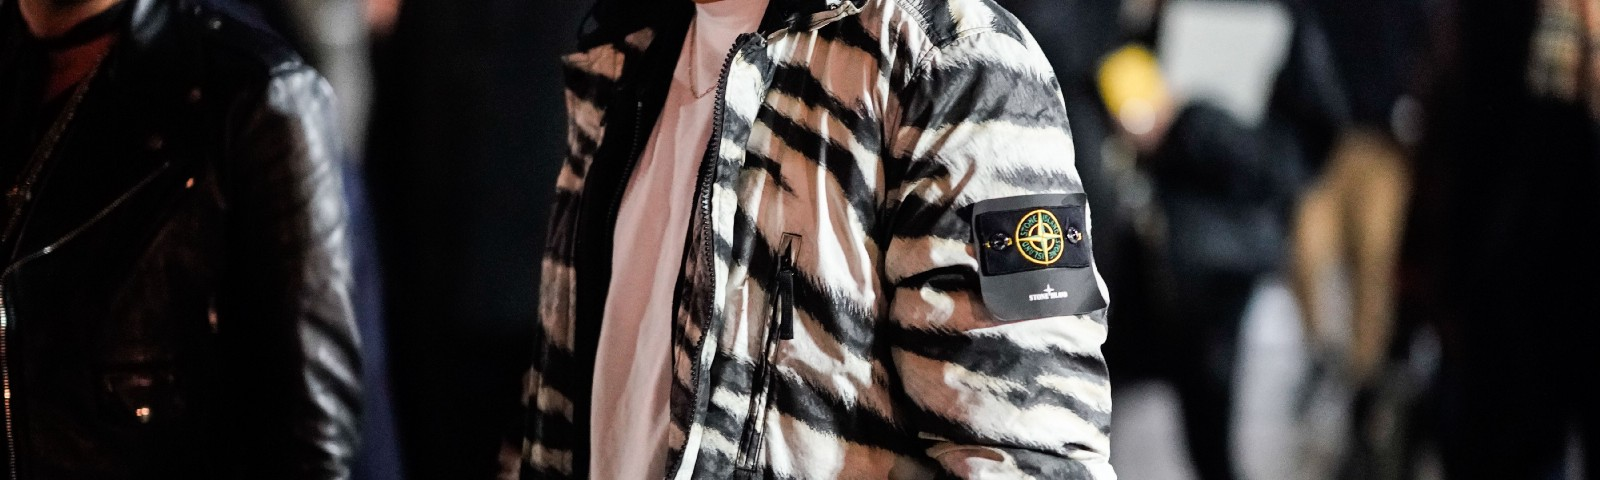 "A man wears a black and white zebra print bomber jacket from the brand ""Stone Island."""